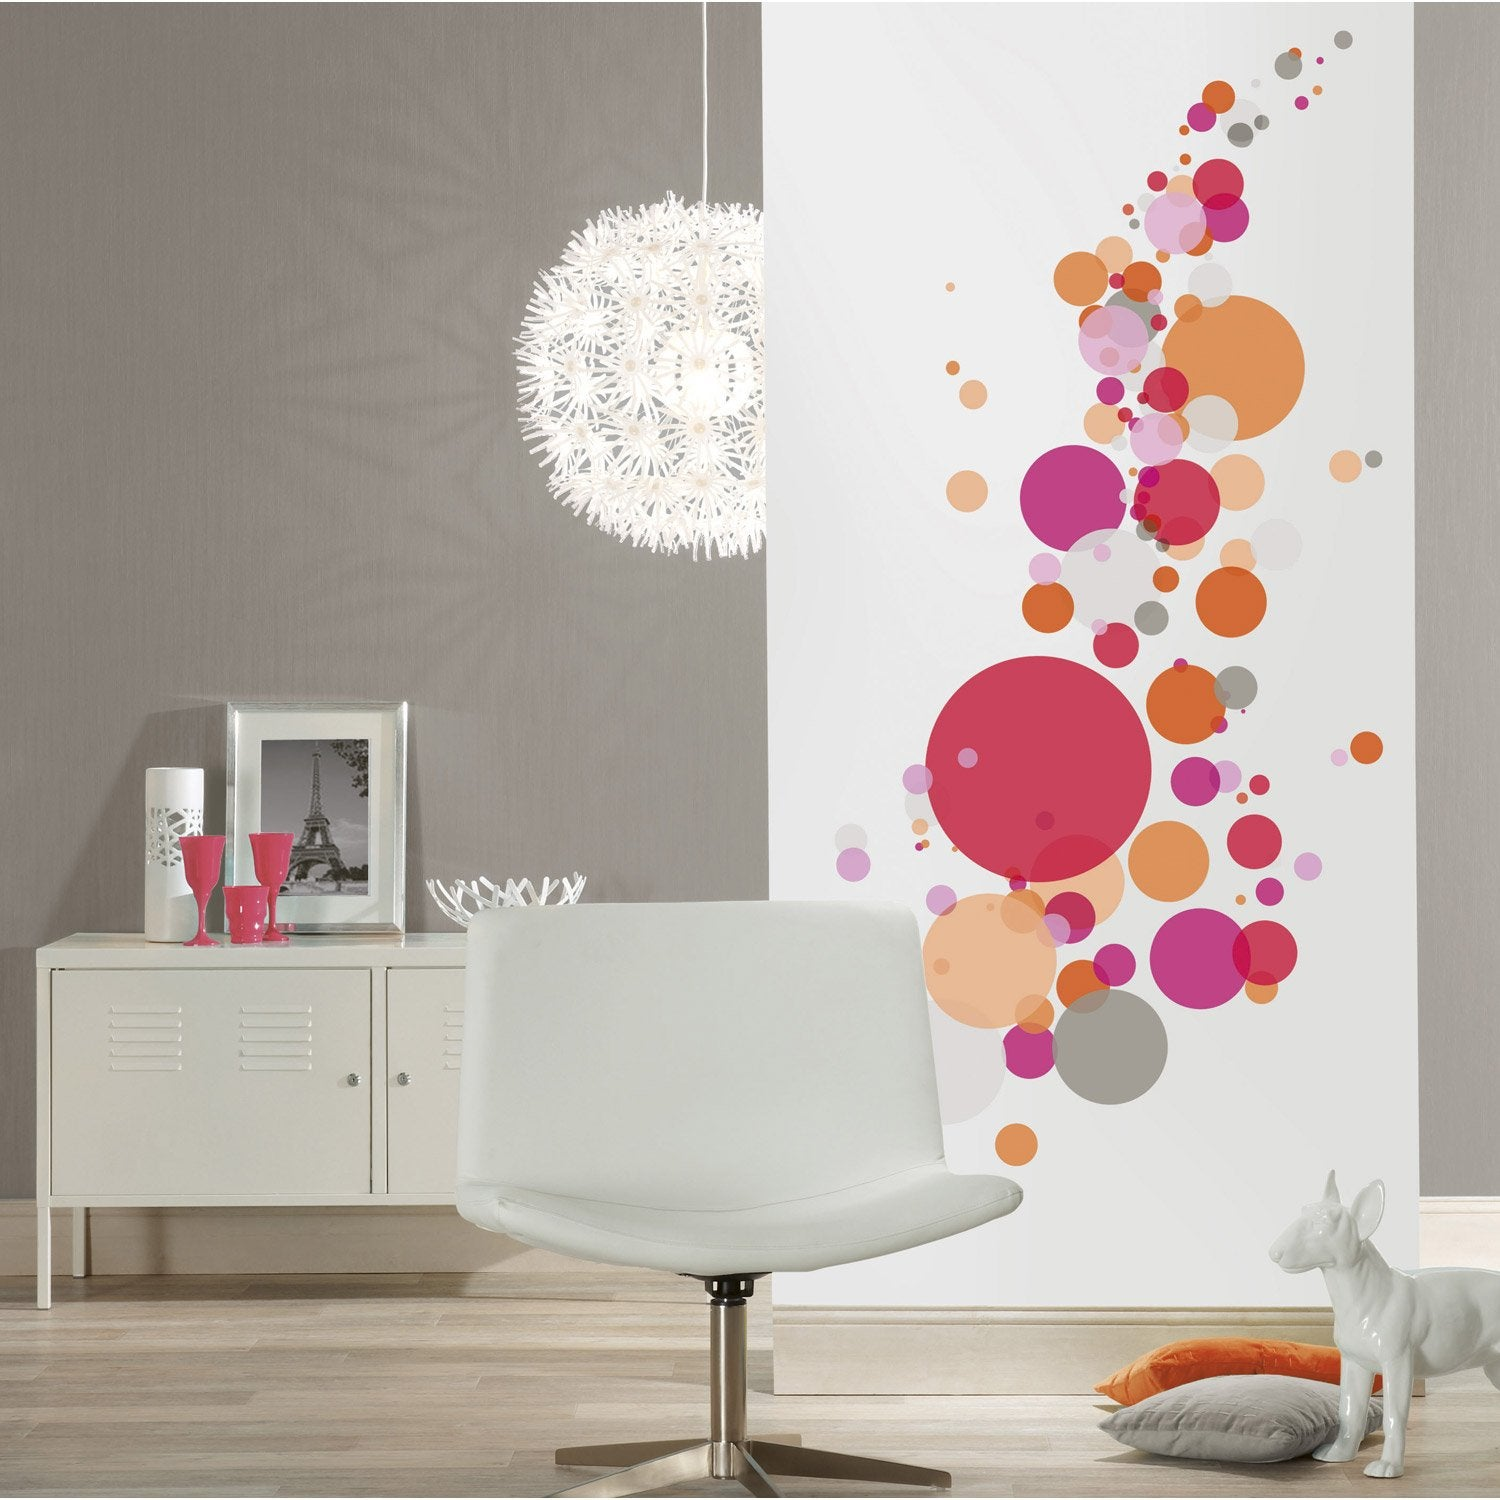 Sticker wizz 47 cm x 67 cm leroy merlin for Decoration porte de chambre